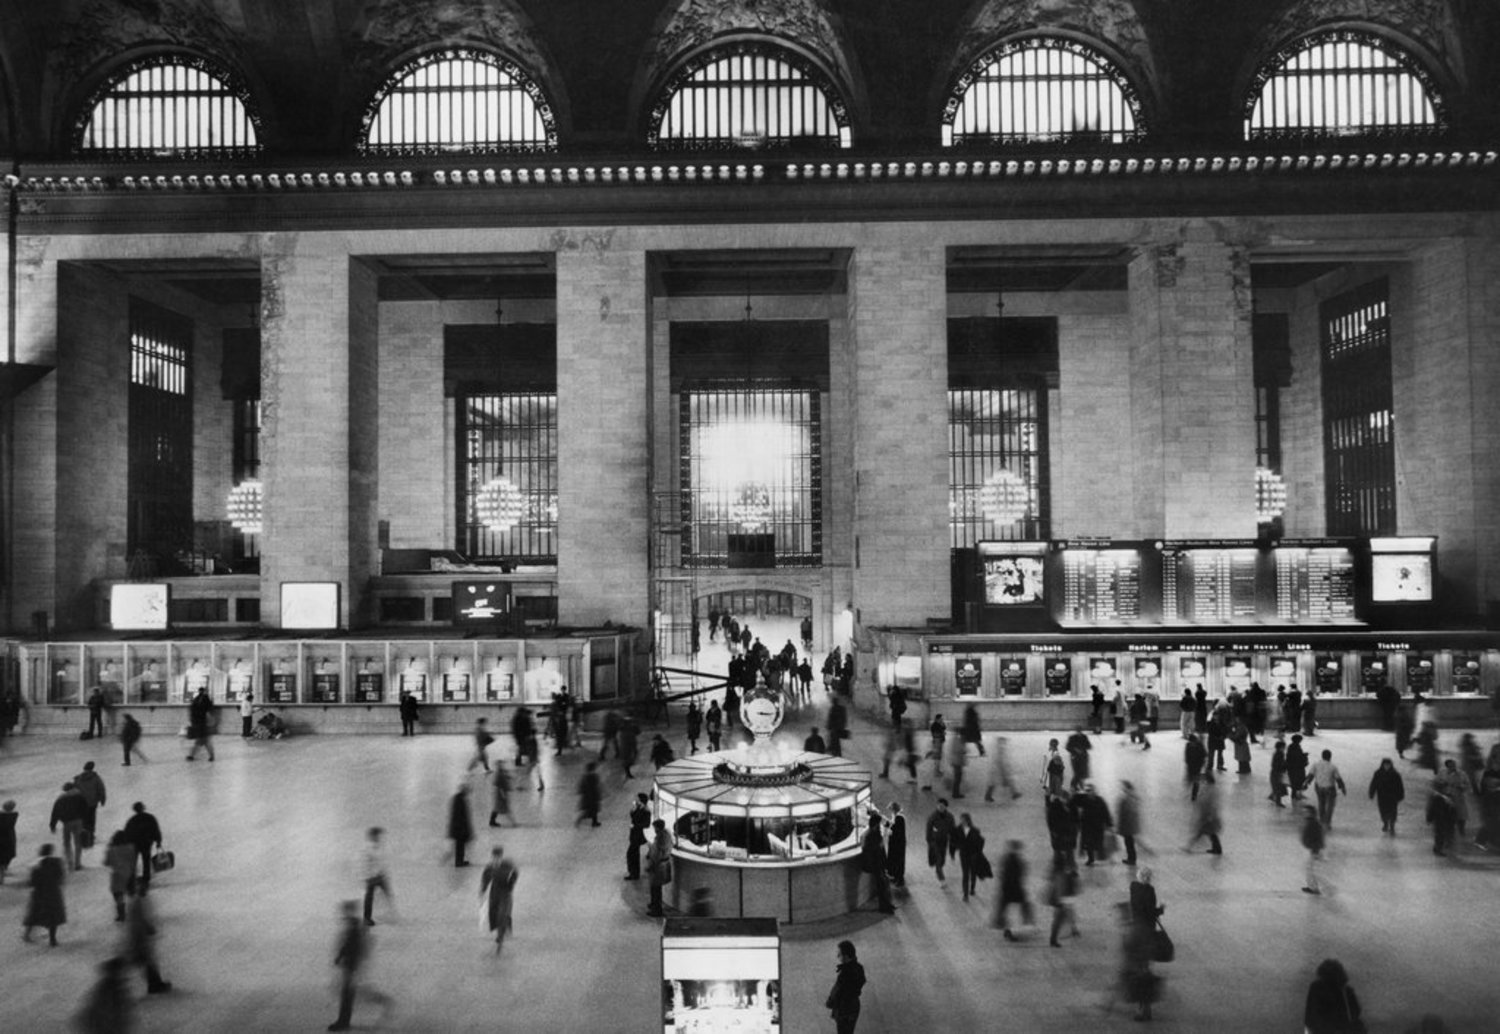 """In the late 1970s, Grand Central Terminal's owners faced bankruptcy and, figuring they had a solution, nearly slapped a 55-story office tower on top of the revered architectural marvel. The terminal was saved by the Supreme Court's decision in Penn Central Transportation Co. v. New York City, """"in which the Supreme Court upheld for the first time the principle on which landmark preservation laws are based,"""" wrote Paul Goldberger in The Times in 1990. William Brennan figures as the hero in Mr. Goldberger's tale, having written the majority opinion that prevented the terminal's owners, Penn Central, from developing on the landmark and thereby securing its status as a structure of public good. Justice Brennan believed, like many others, that historic buildings and other structures """"enhance the quality of life for all."""""""